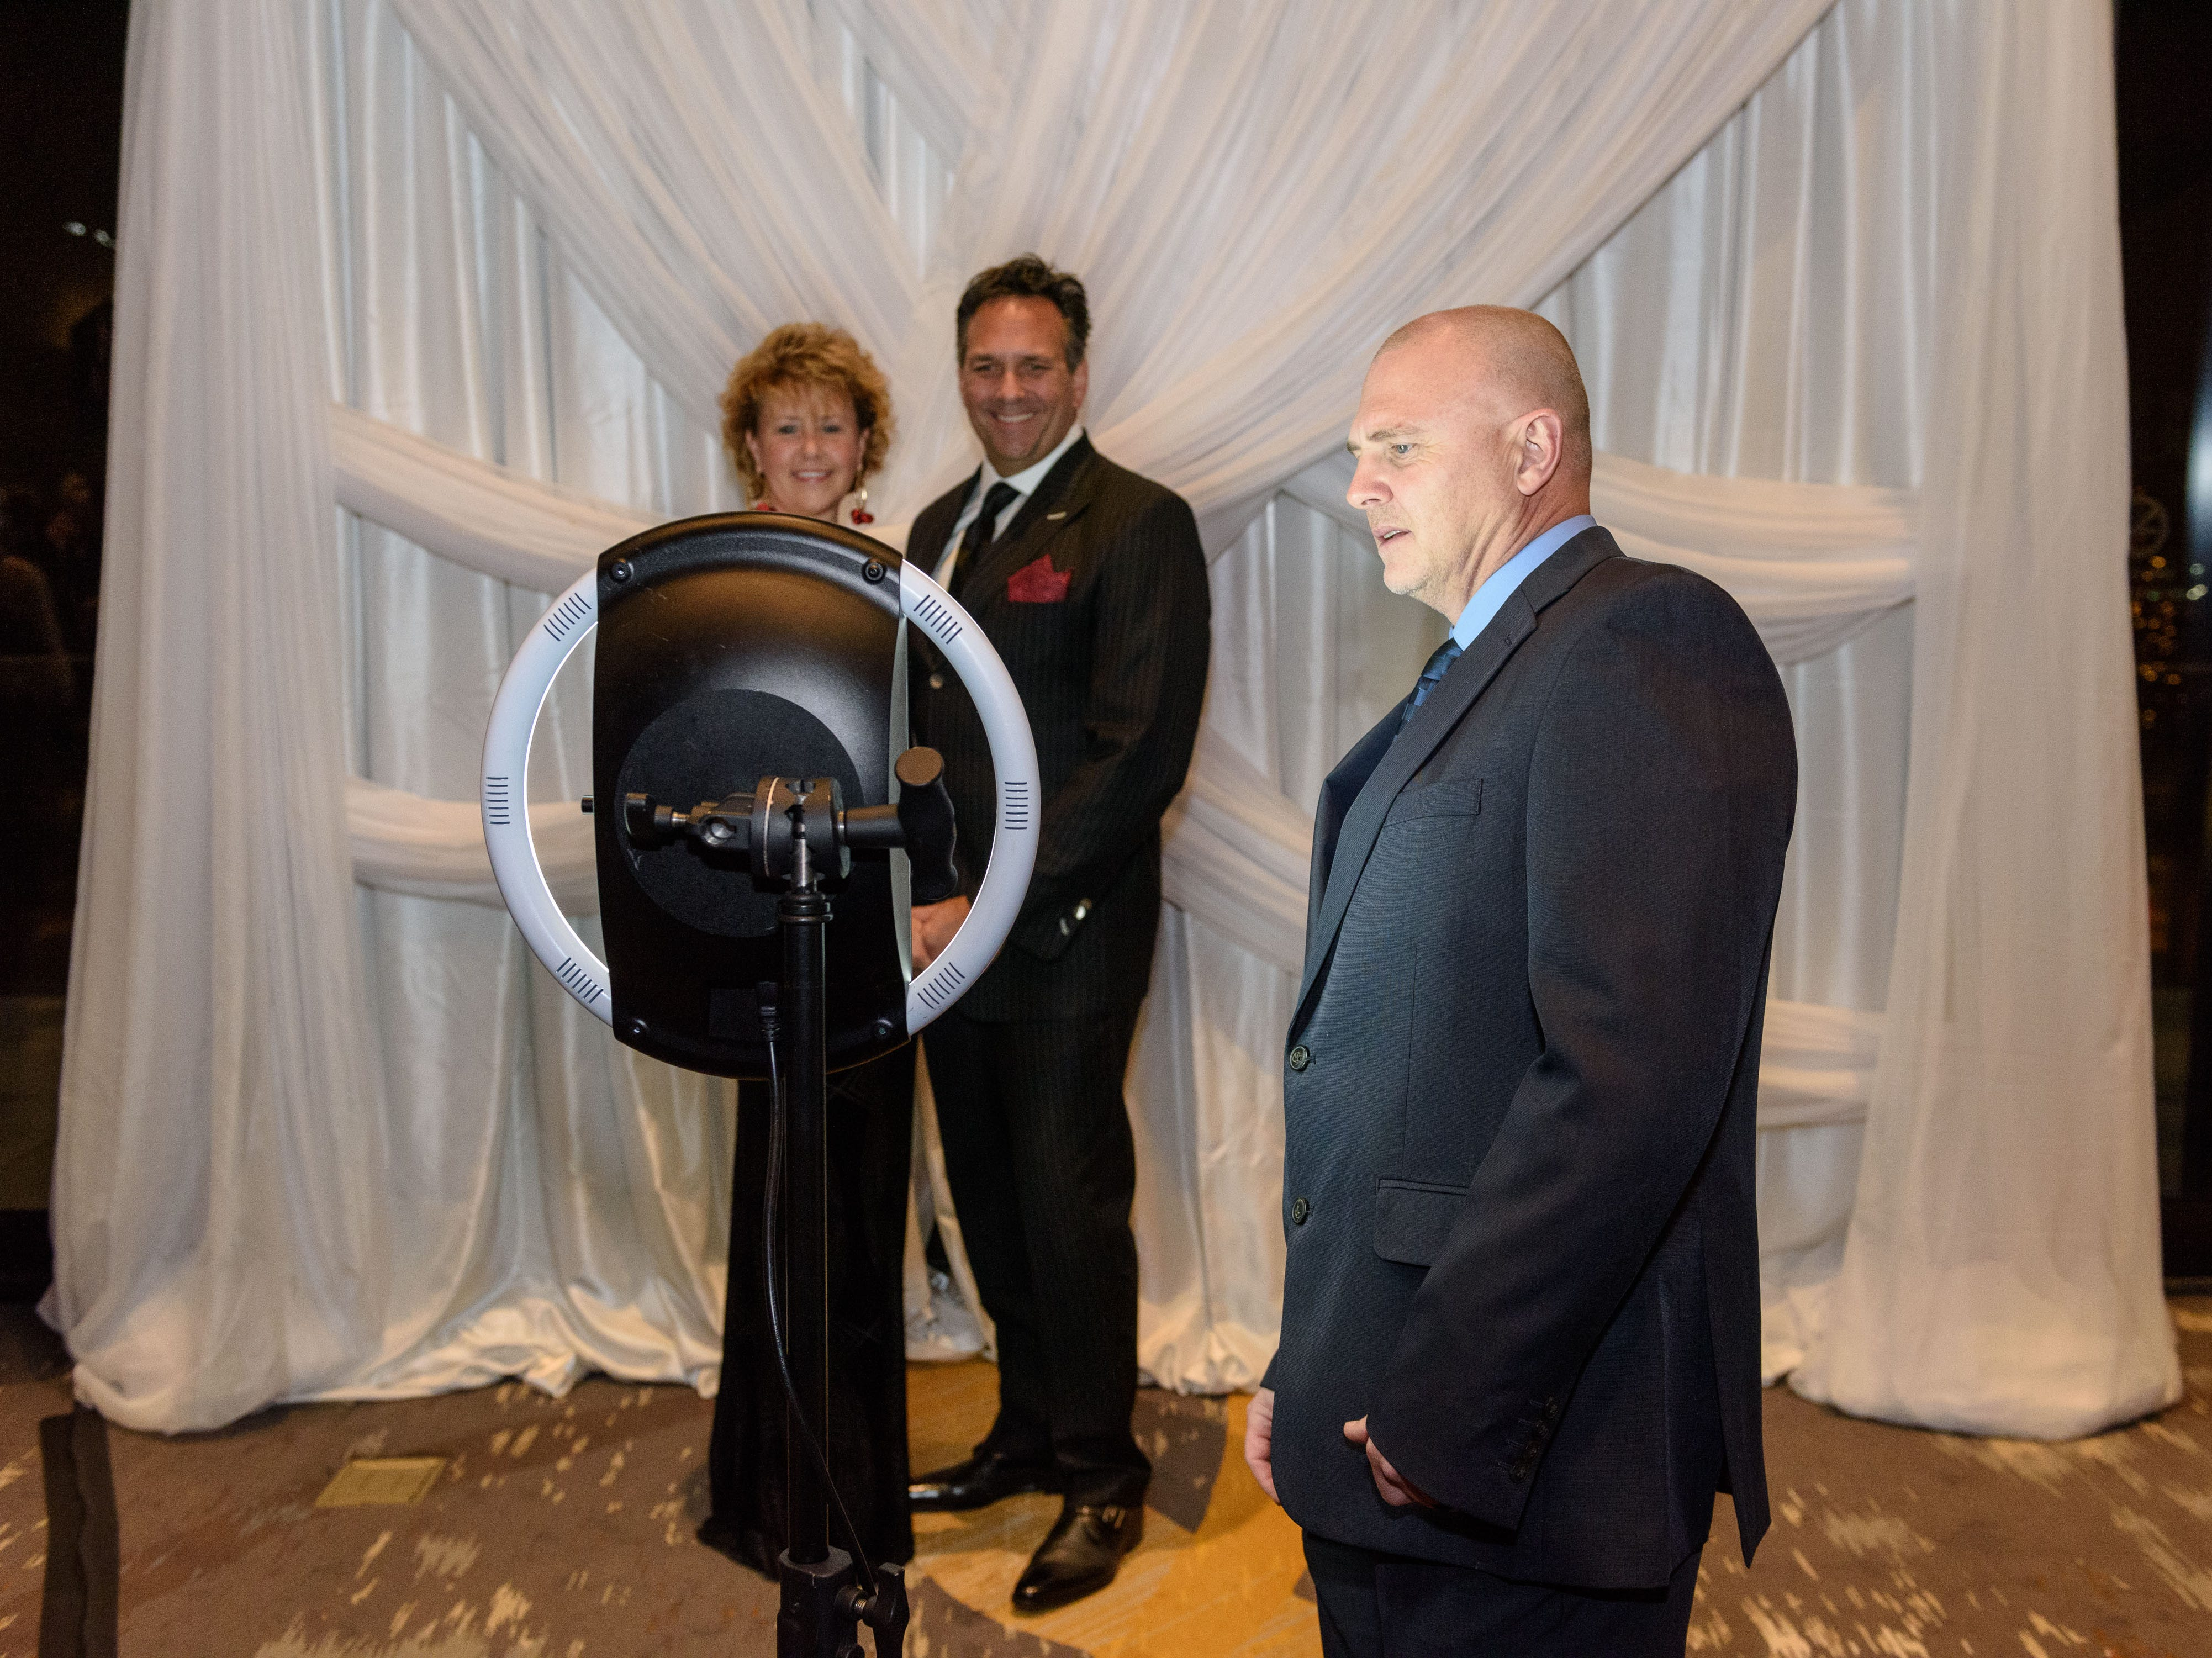 Mitzi and Steve Tomanchek pose for a photo as David Head assists at the Snow Ball Gala at the Omni Hotel, a benefit for the Jennifer Lawrence Cardiac Intensive Care Unit (CICU) at Norton ChildrenÕs Hospital. Nov. 17, 2018